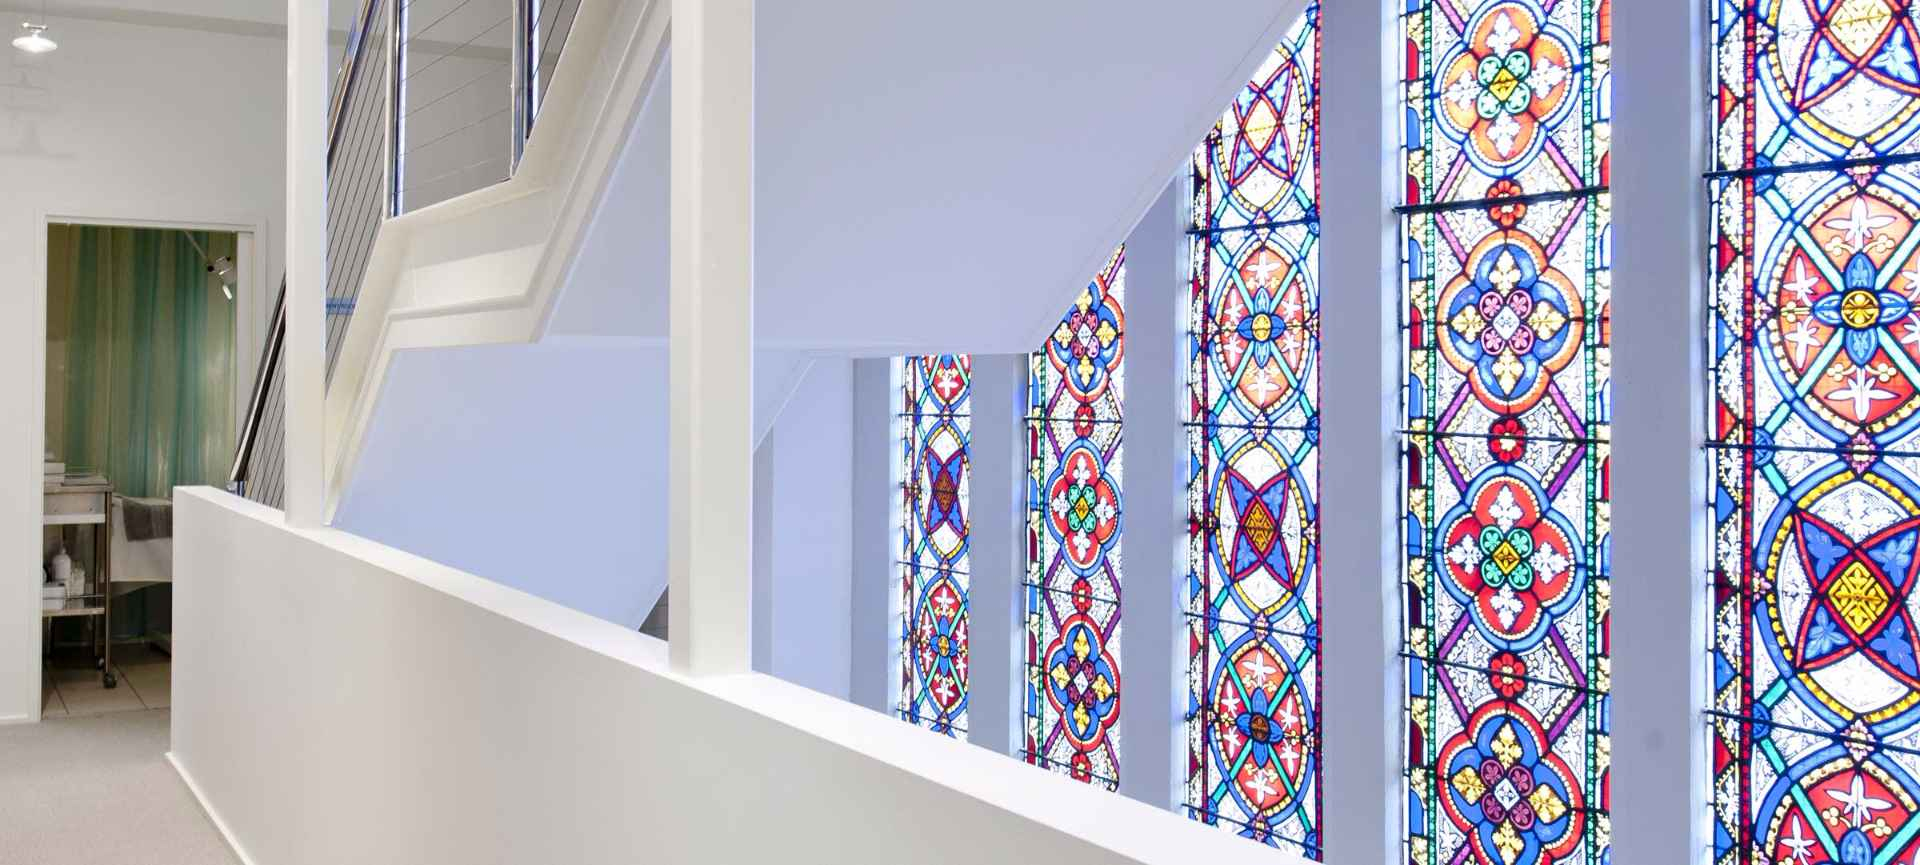 Stain glass windows inside the Cosmetic Refinement Clinic Geelong